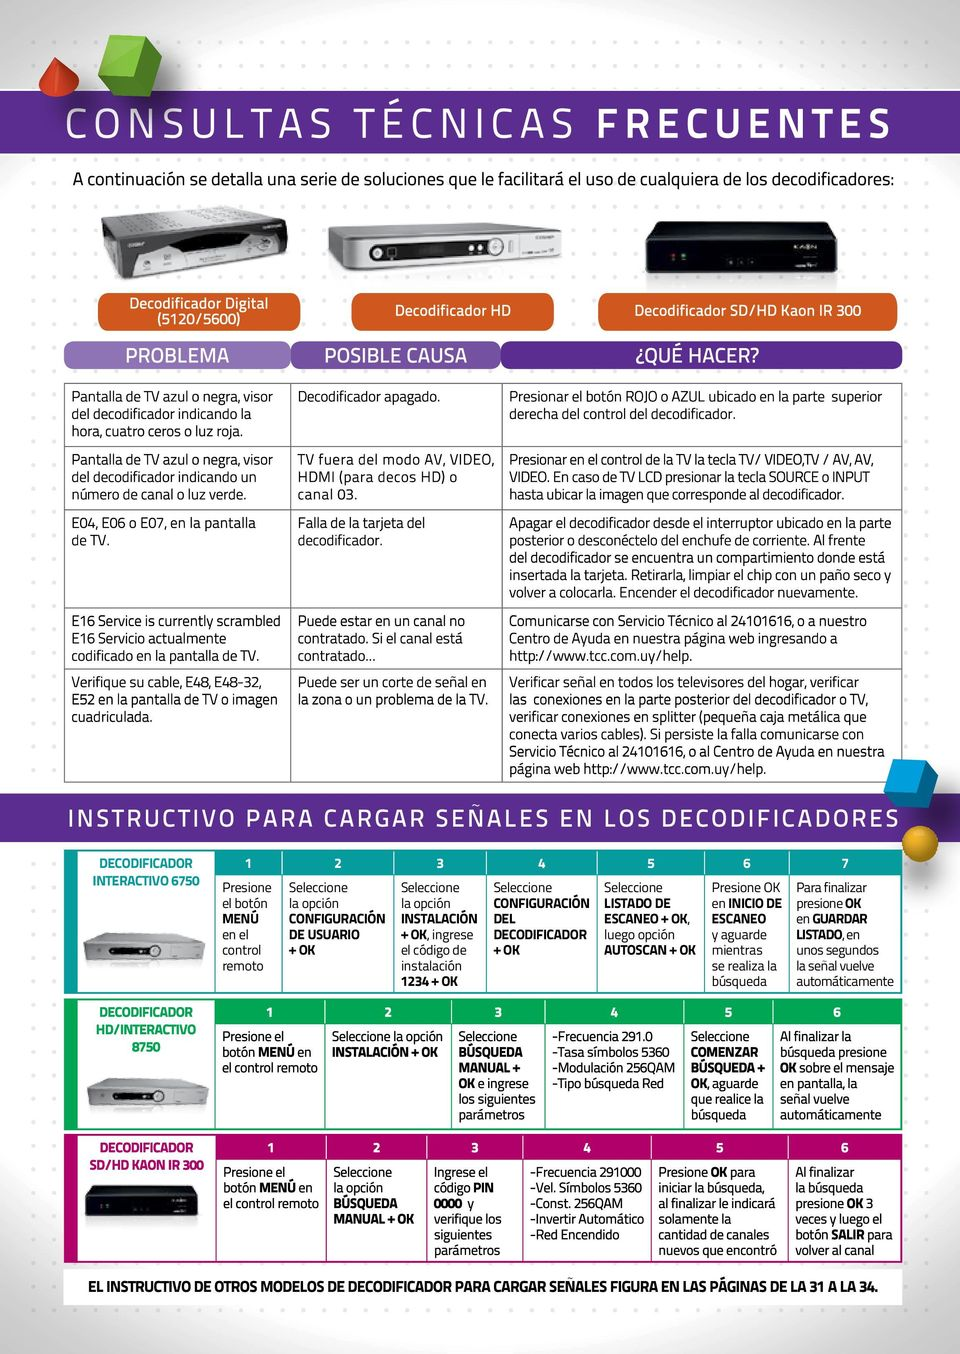 Verifique su cable, E48, E48-32, E52 en la pantalla de TV o imagen cuadriculada. Decodificador apagado. TV fuera del modo AV, VIDEO, HDMI (para decos HD) o canal 03.